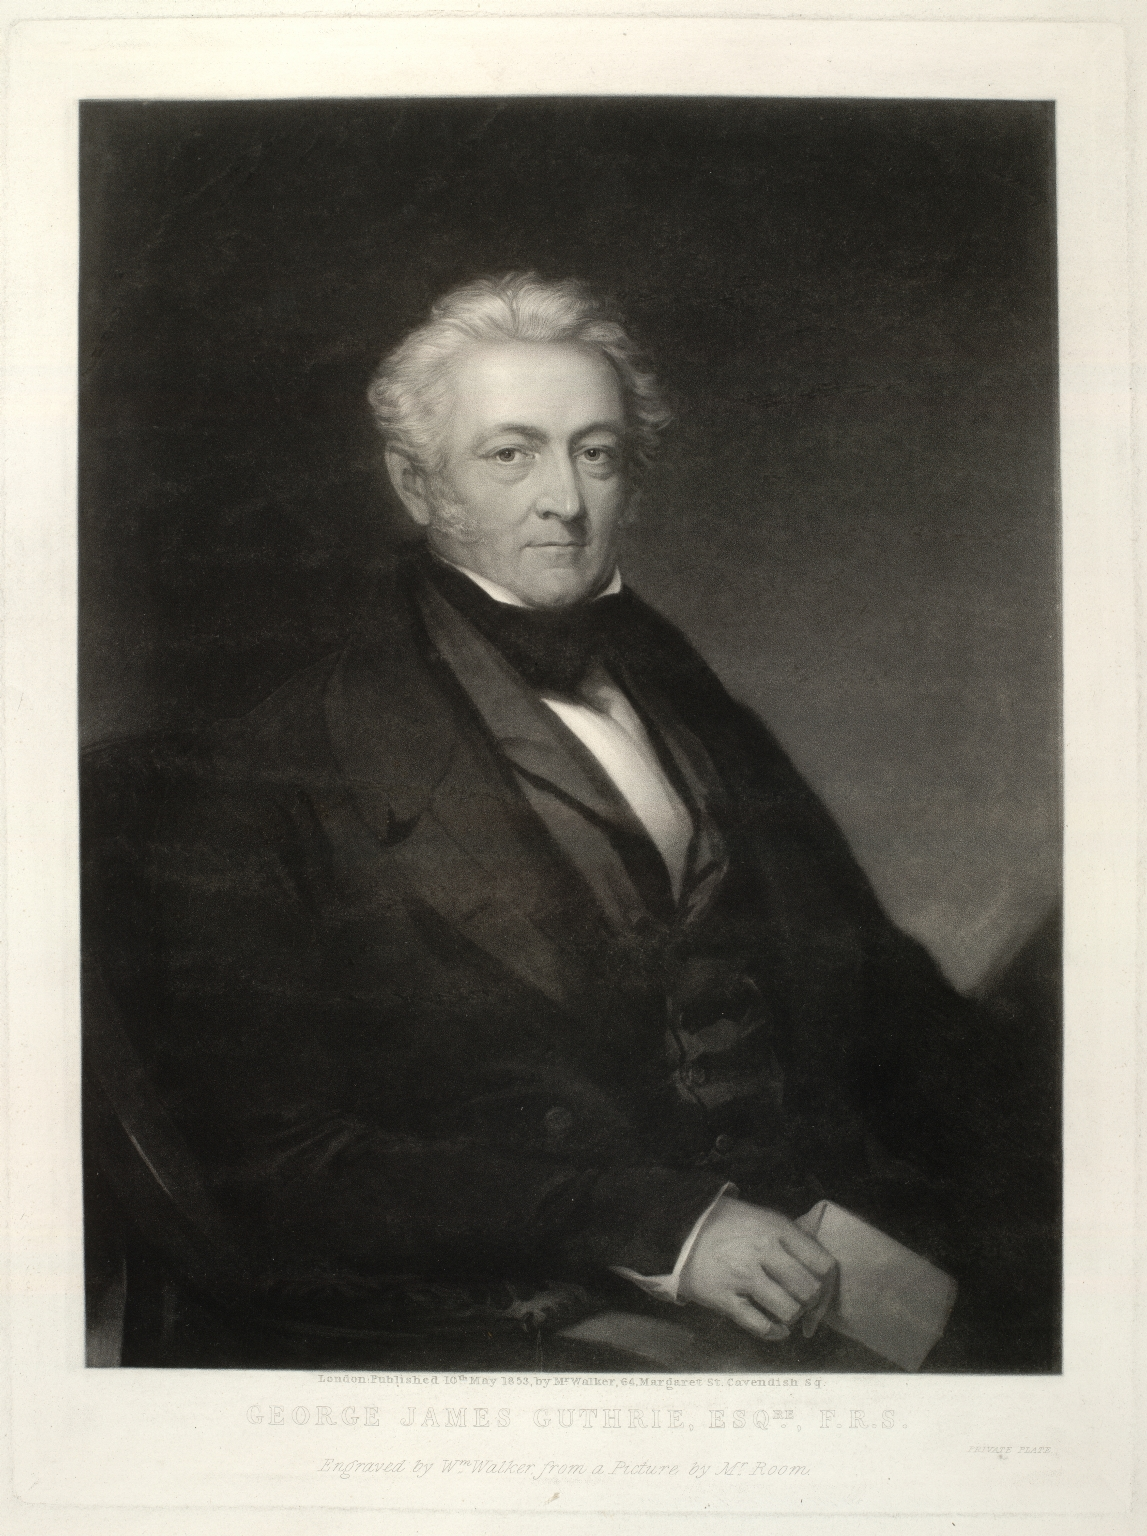 George James Guthrie (1785-1856), PRCS, FRS. Surgeon